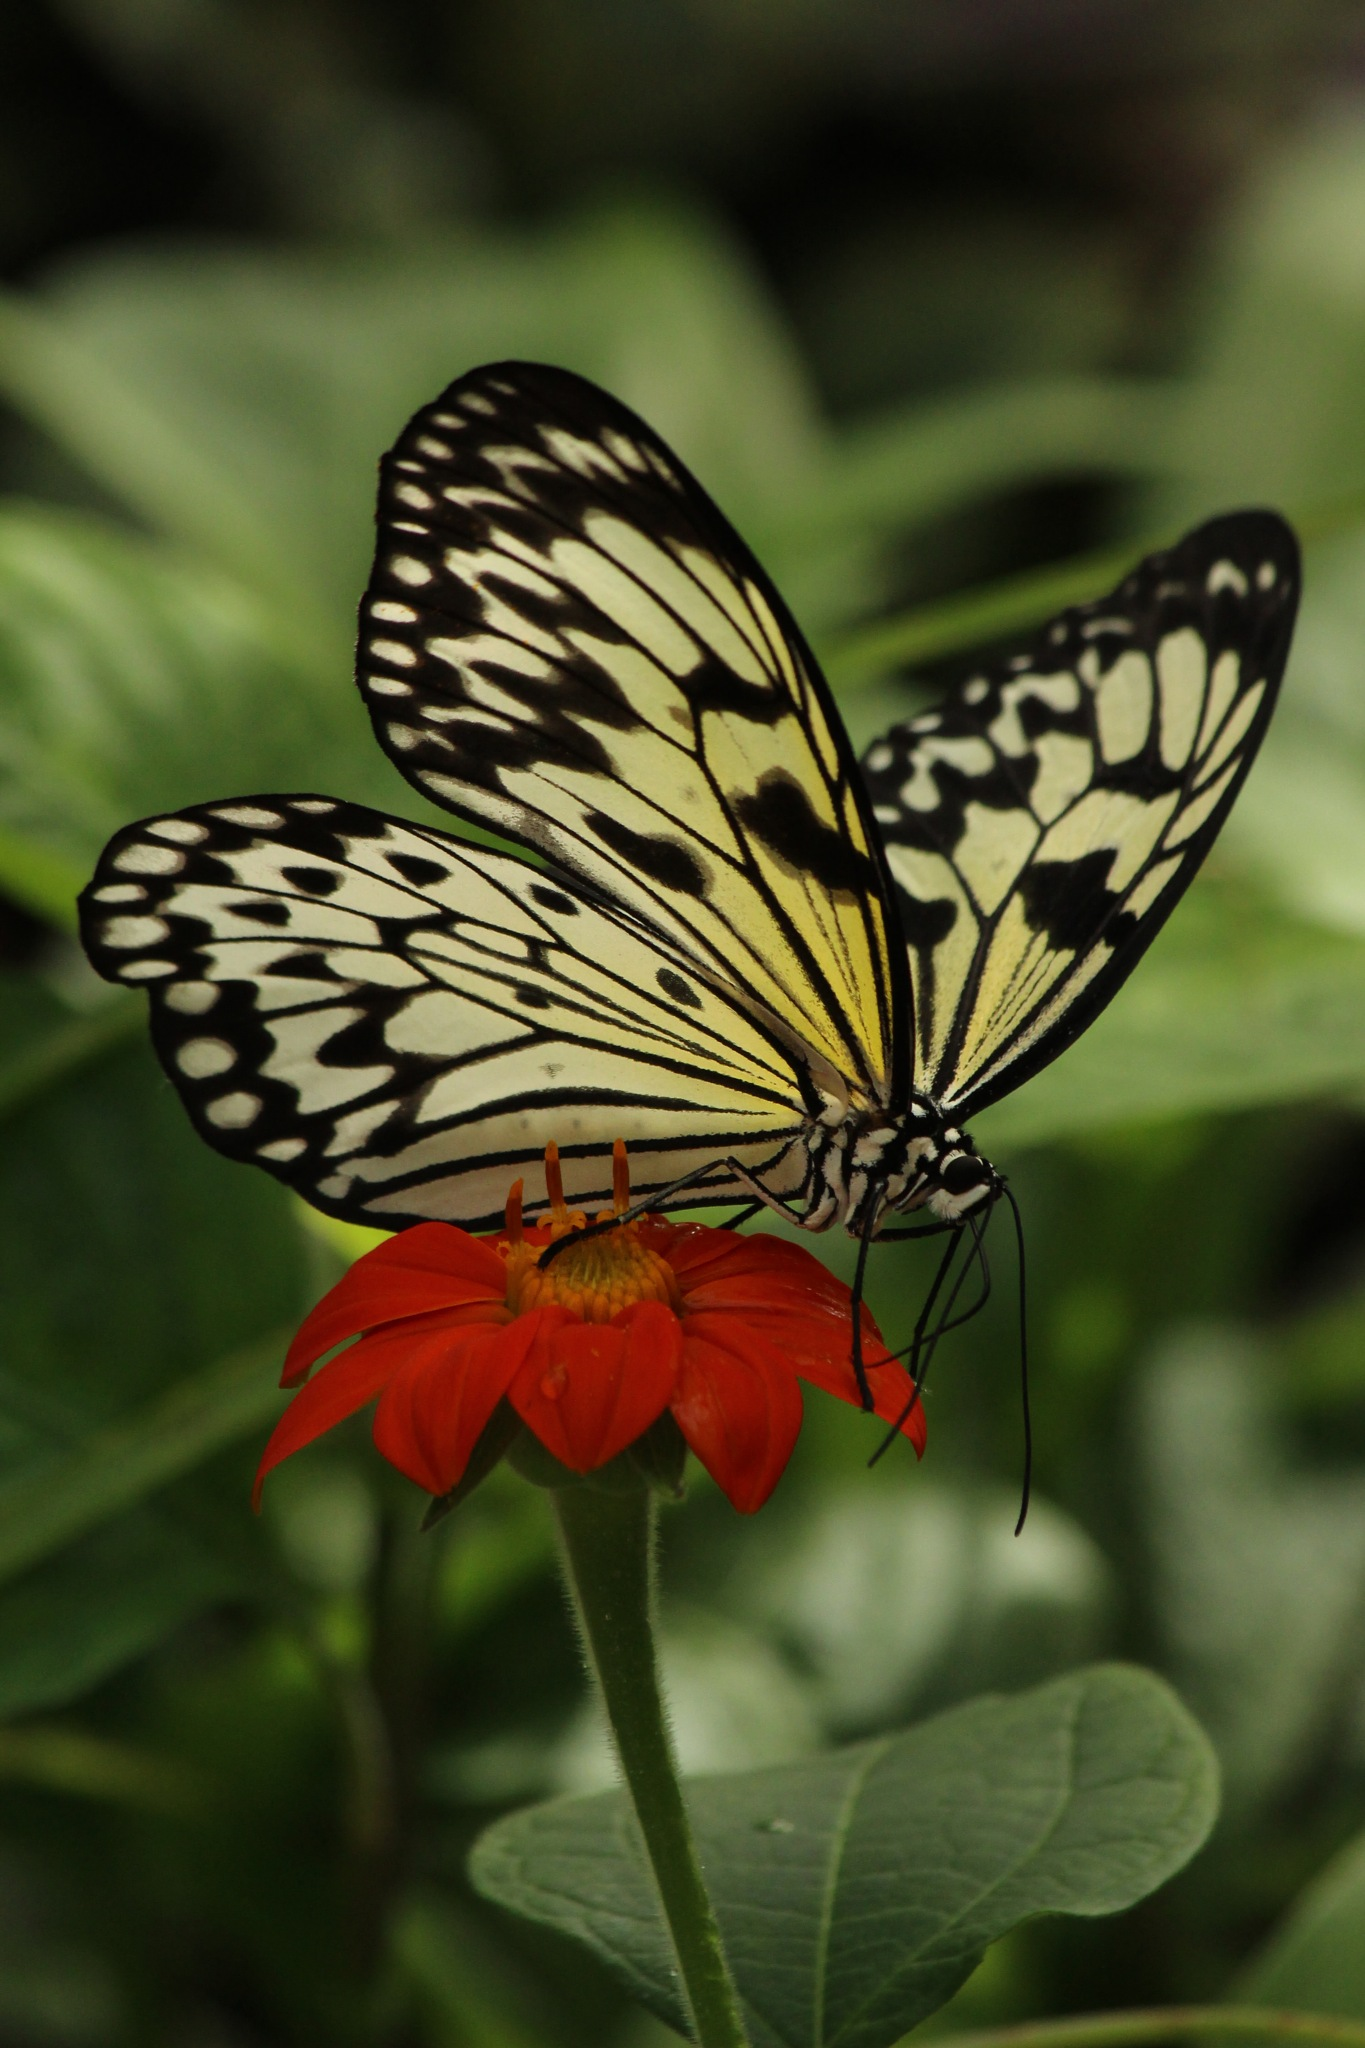 Tree Nymph Butterfly (Idea leuconoe) by cliff.tolley.7